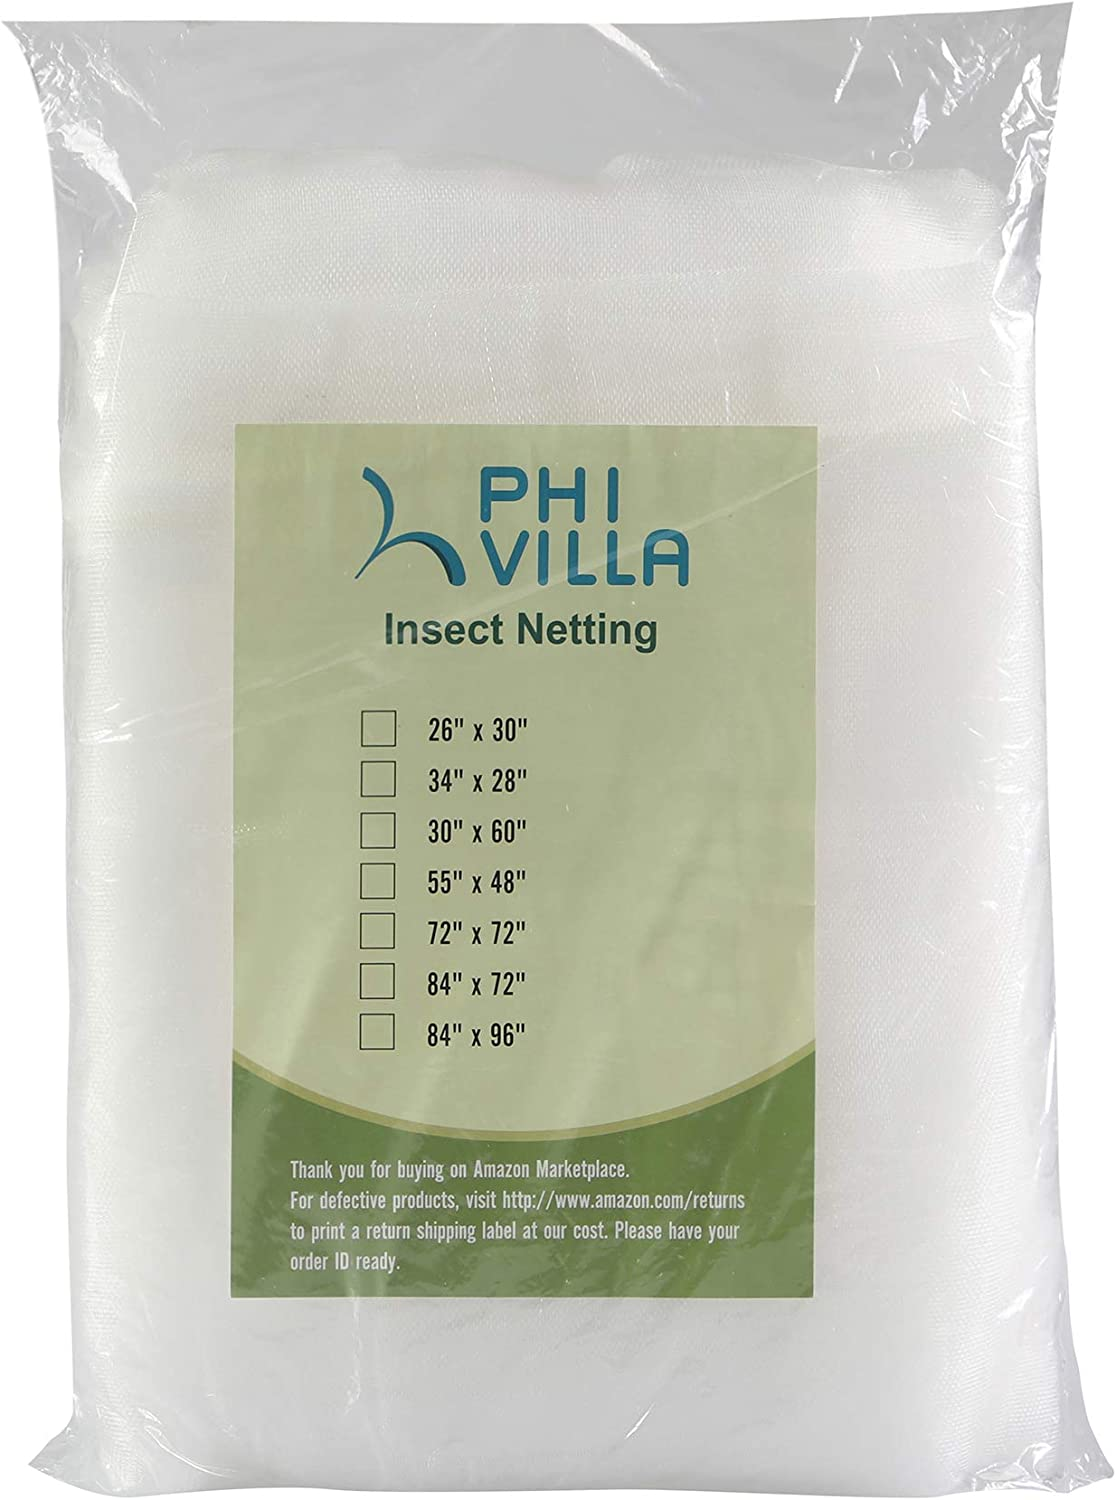 PHI VILLA Tree Bag Netting - Insect/Bird Netting - Tree Cover with Zipper Closures 84